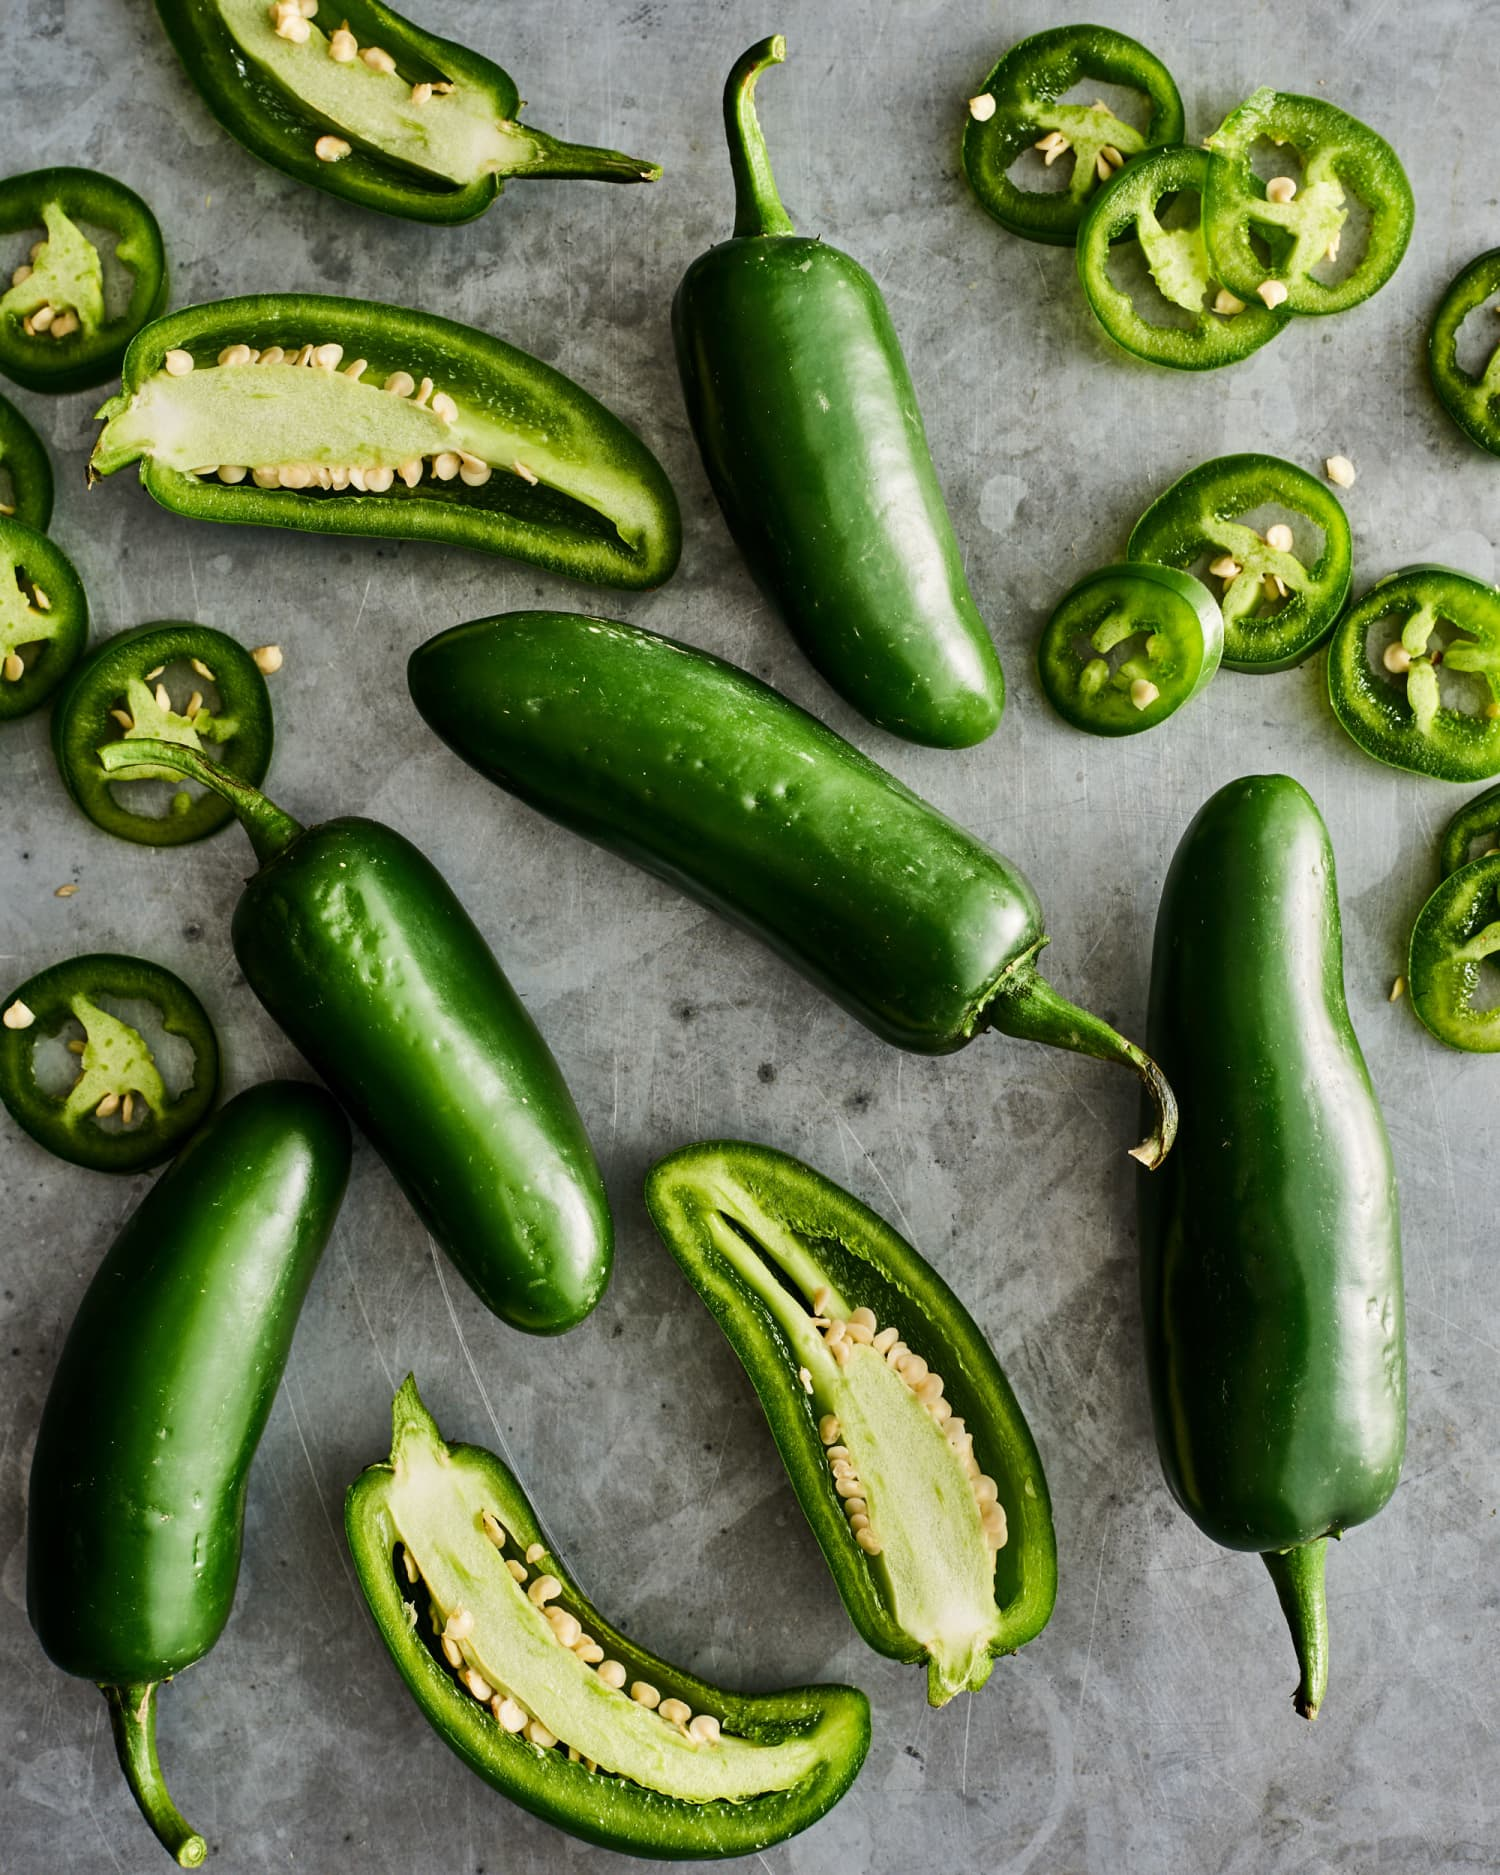 Jalapeño Peppers: The Best Ways to Pick Them, Cook Them, and Eat Them